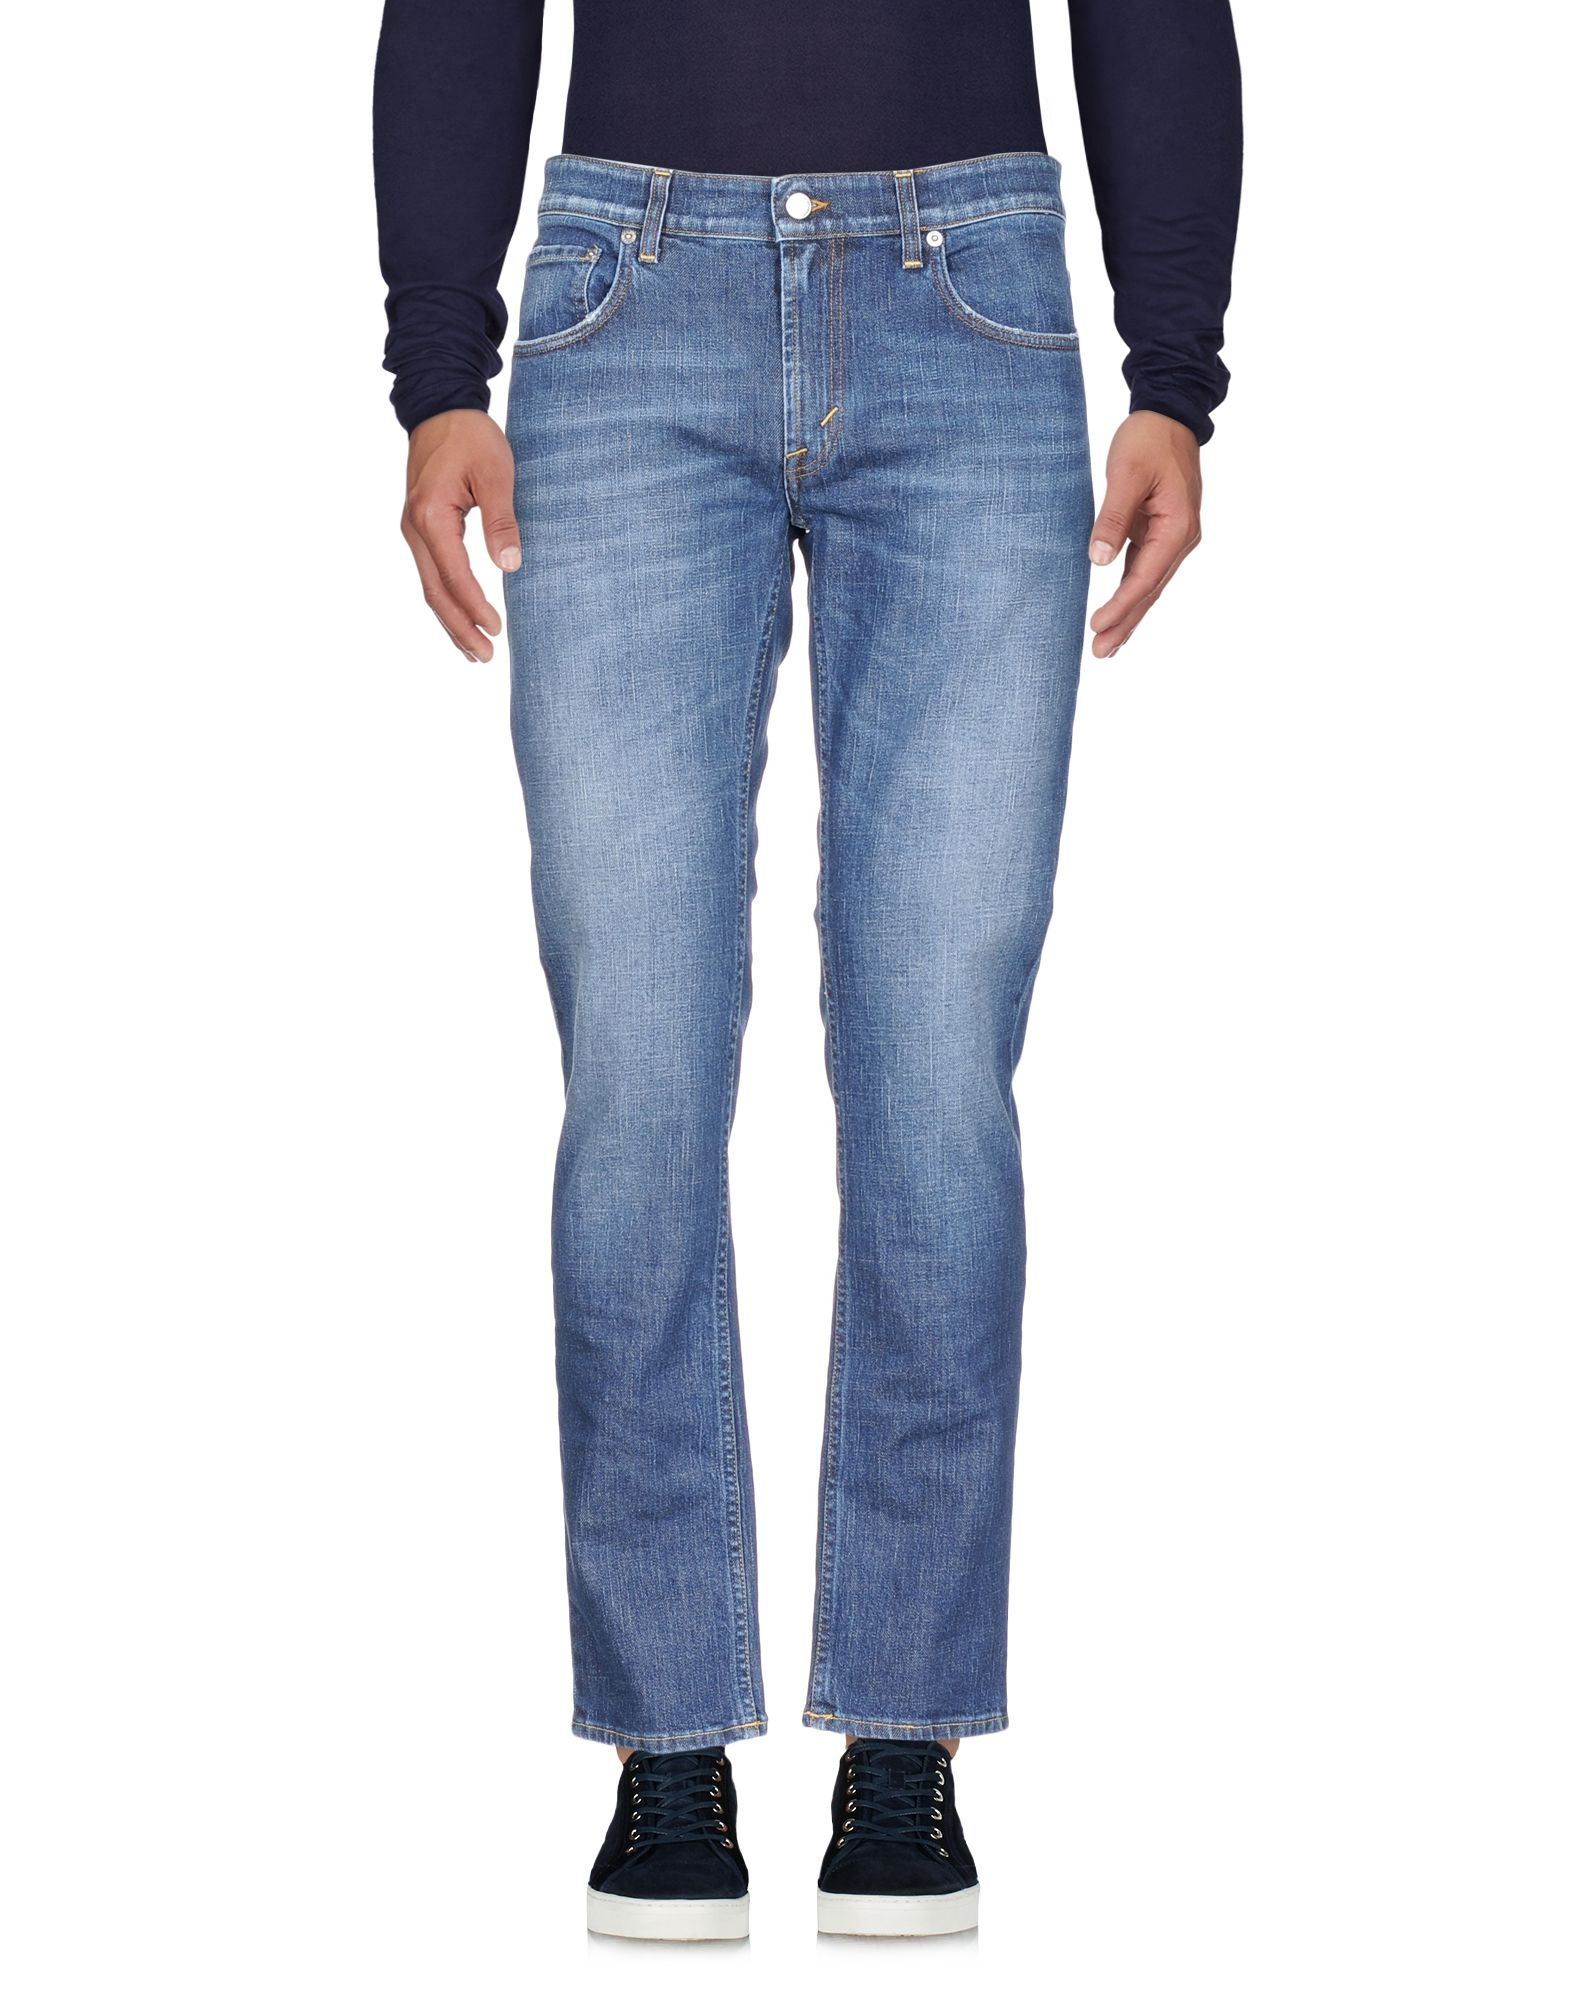 Pantaloni Jeans Department 5 Donna - Acquista online su